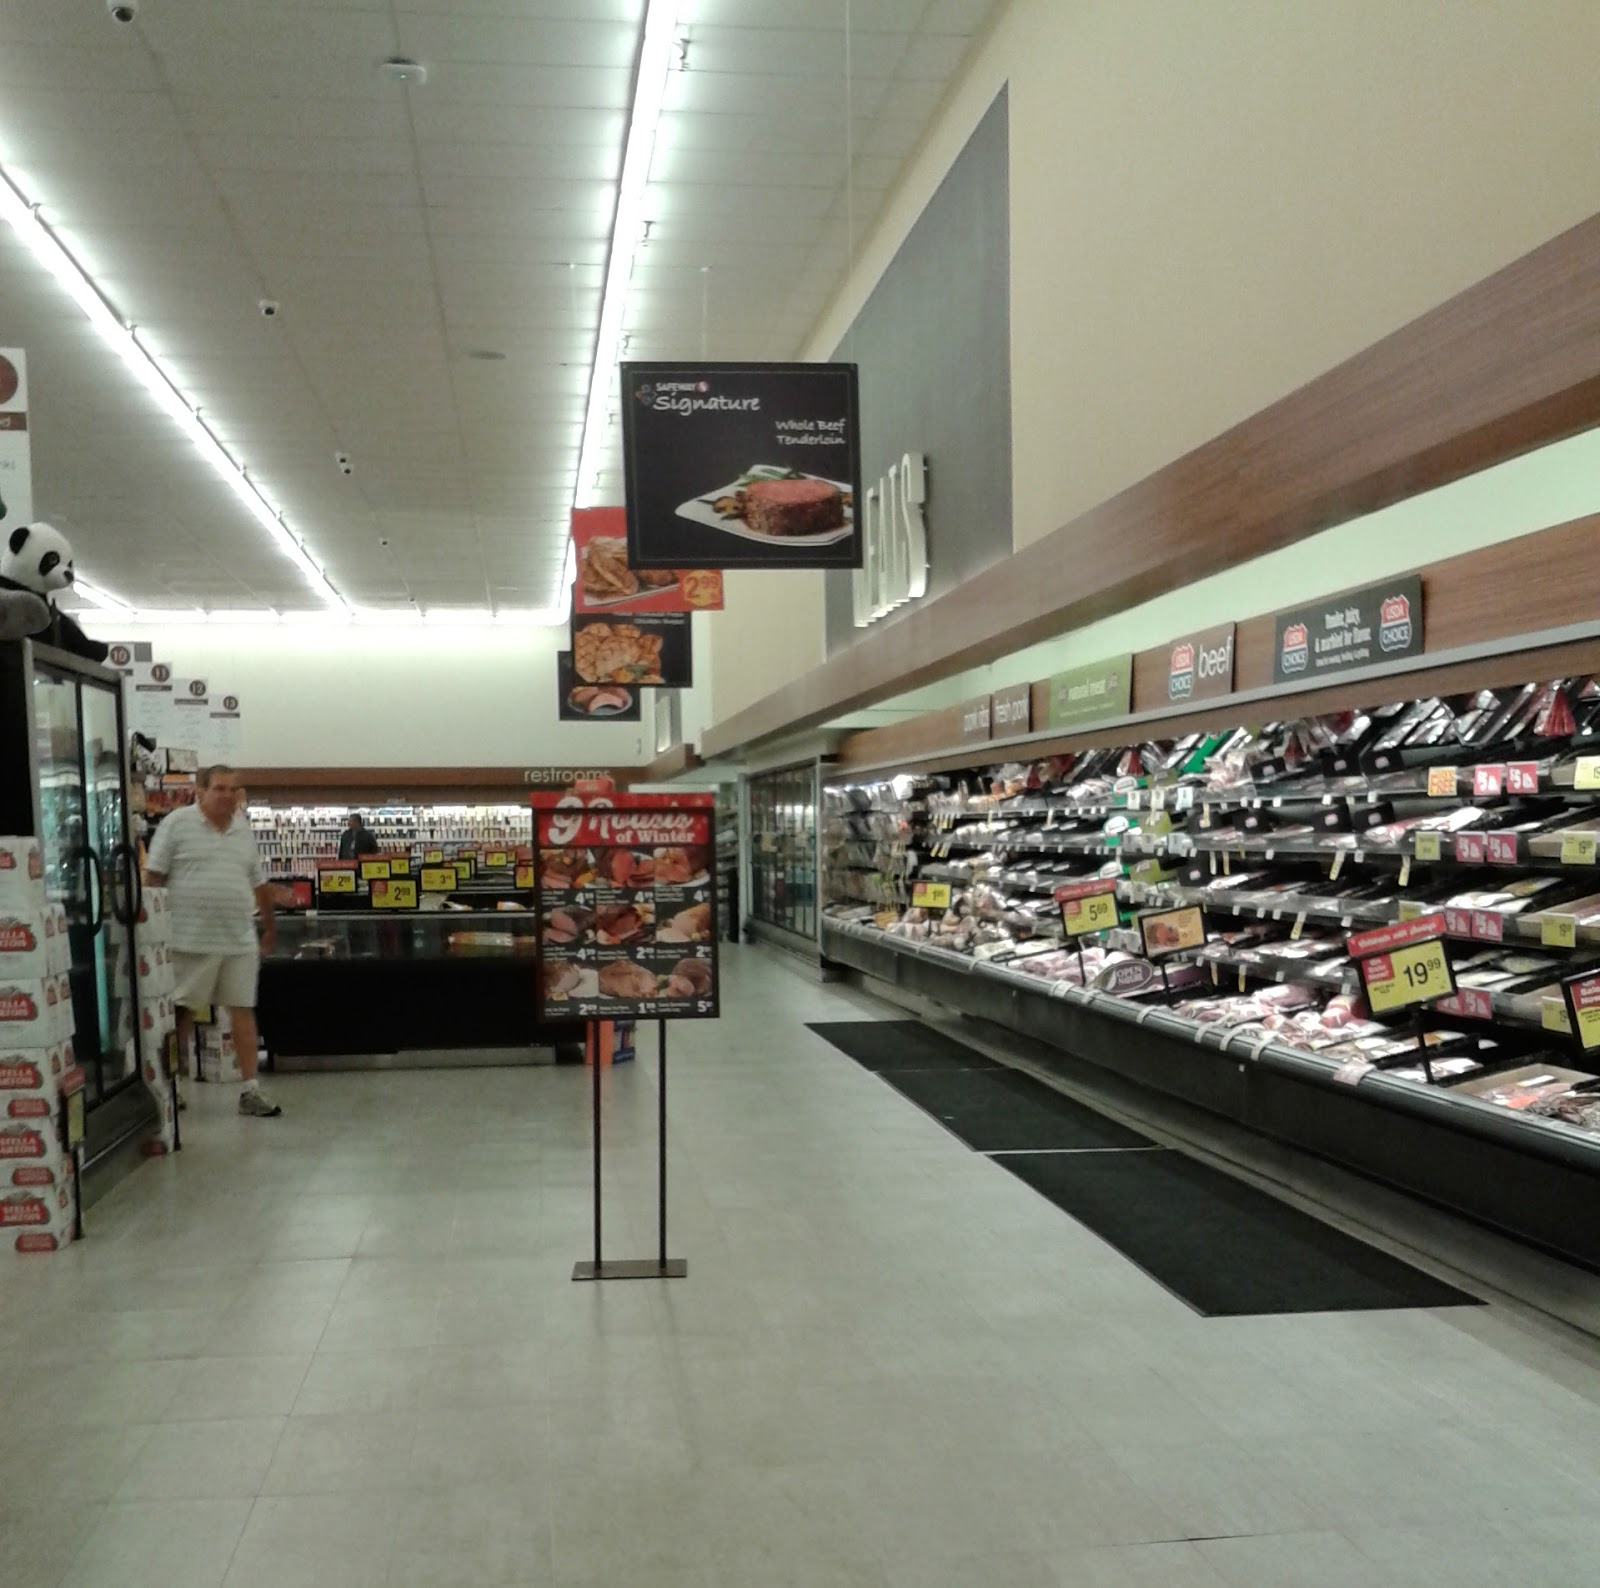 Albertsons Florida Blog Have Yourself A Merry Little Bit